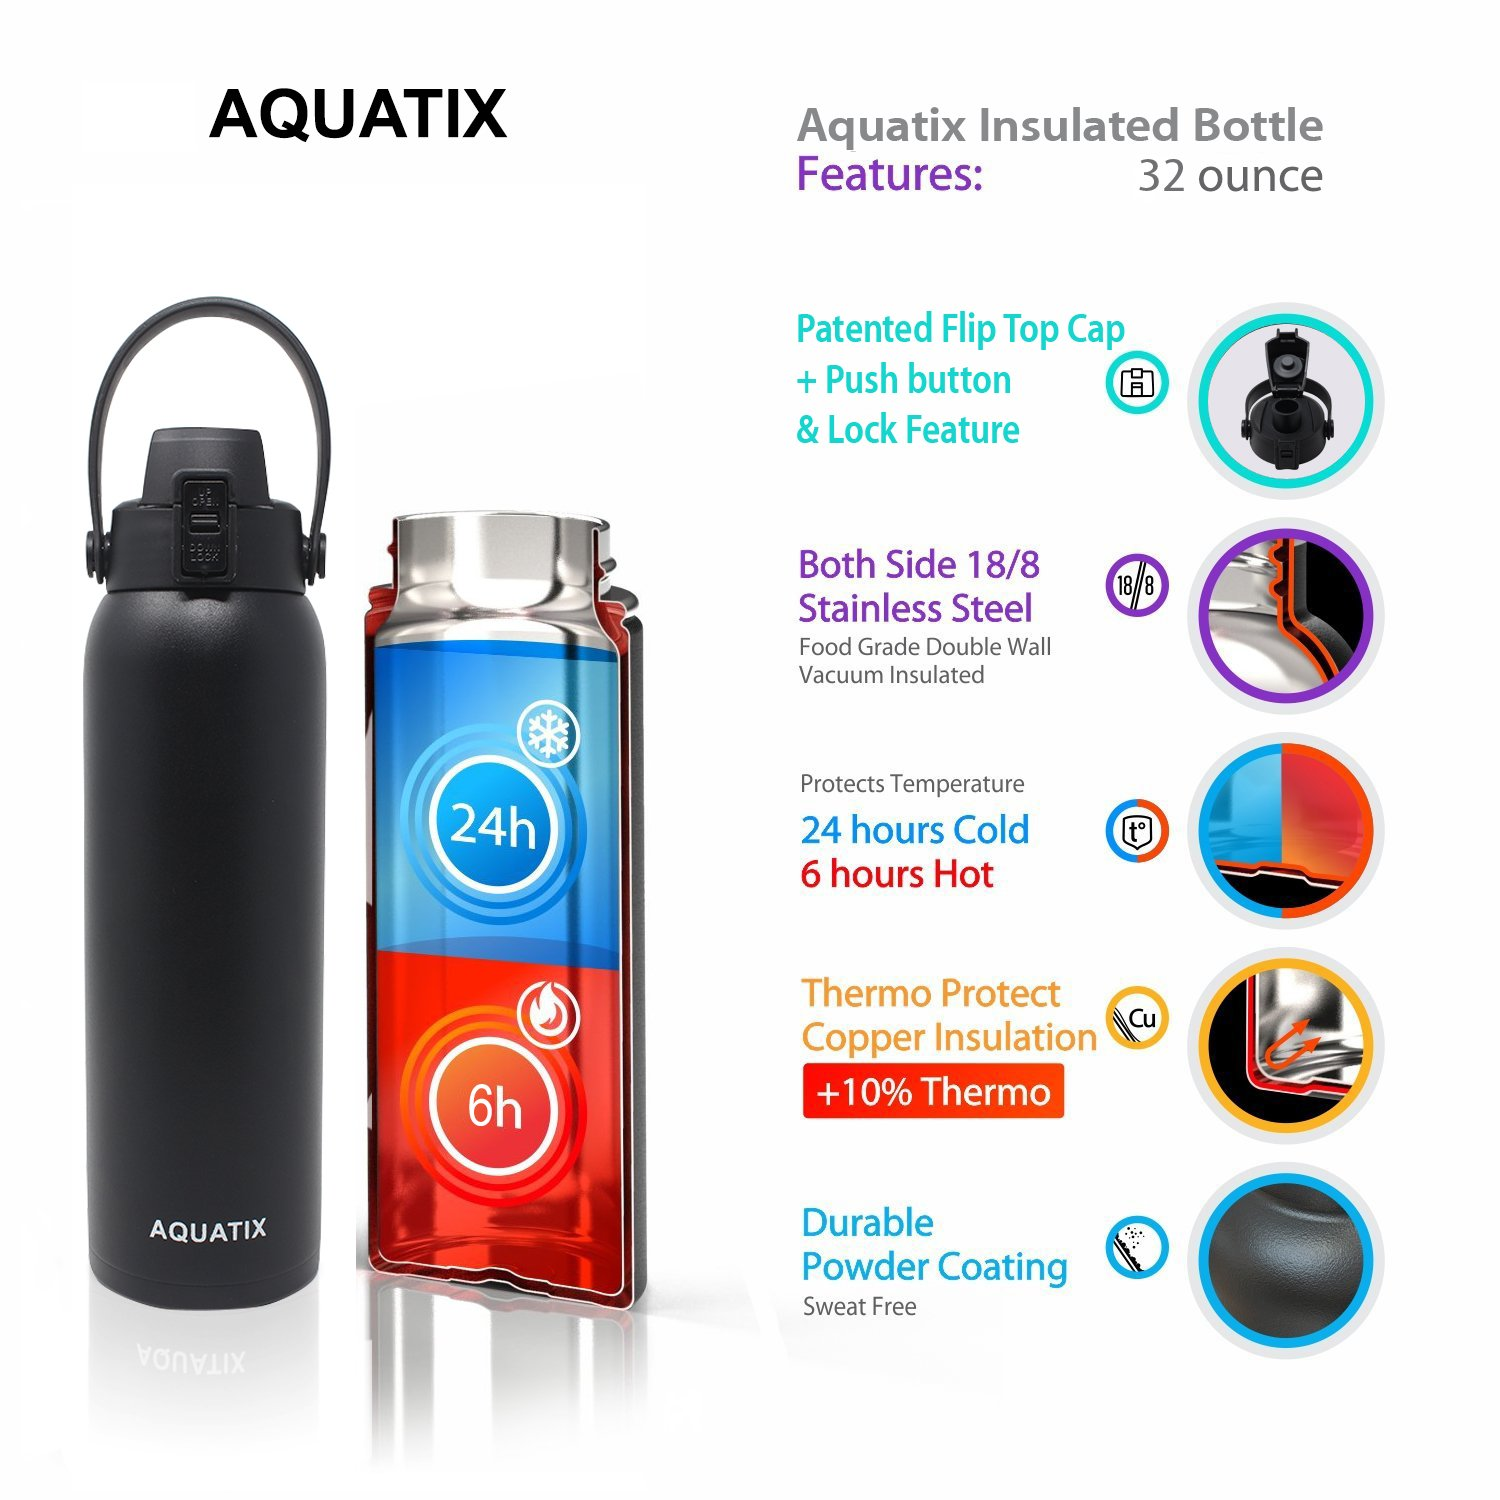 Keeps Drinks Cold 24 hr//Hot 6 hr Aquatix FlipTop Sport Bottle AQ-FTP-BLK-32 Pure Stainless Steel Double Wall Vacuum Insulated Sports Water Bottle Convenient Flip Top Cap with Removable Strap Handle New Aquatix Black, 32 Ounce